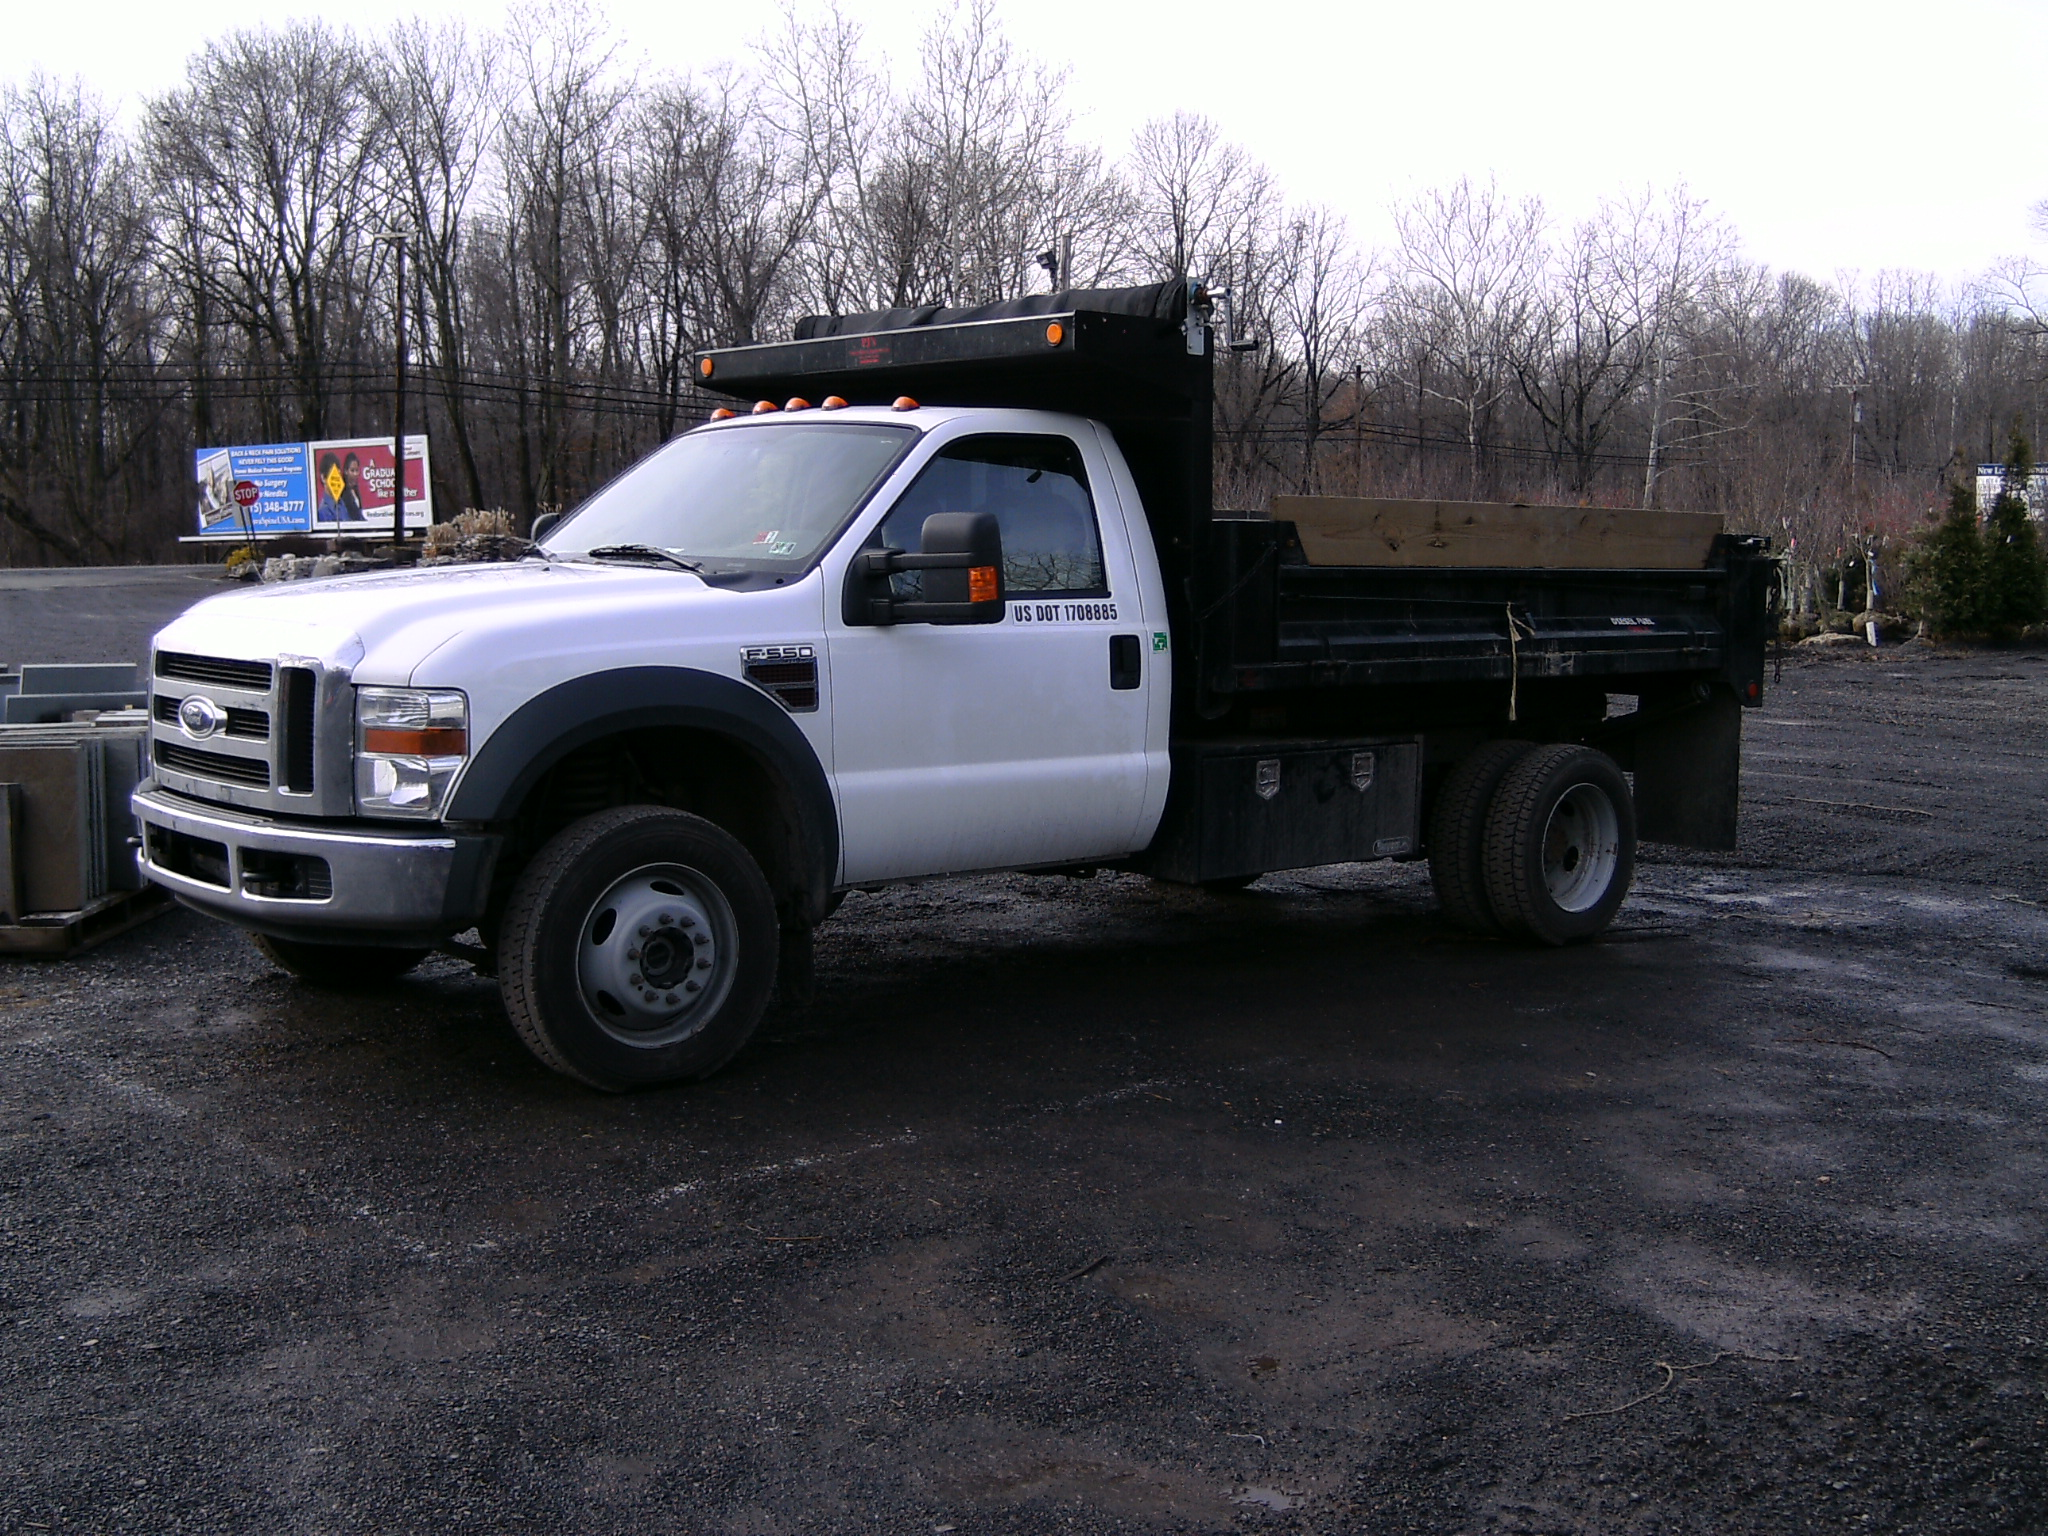 Our F550 Dumptruck  with Crew Cab. Fold Down Sides and with 4WD.